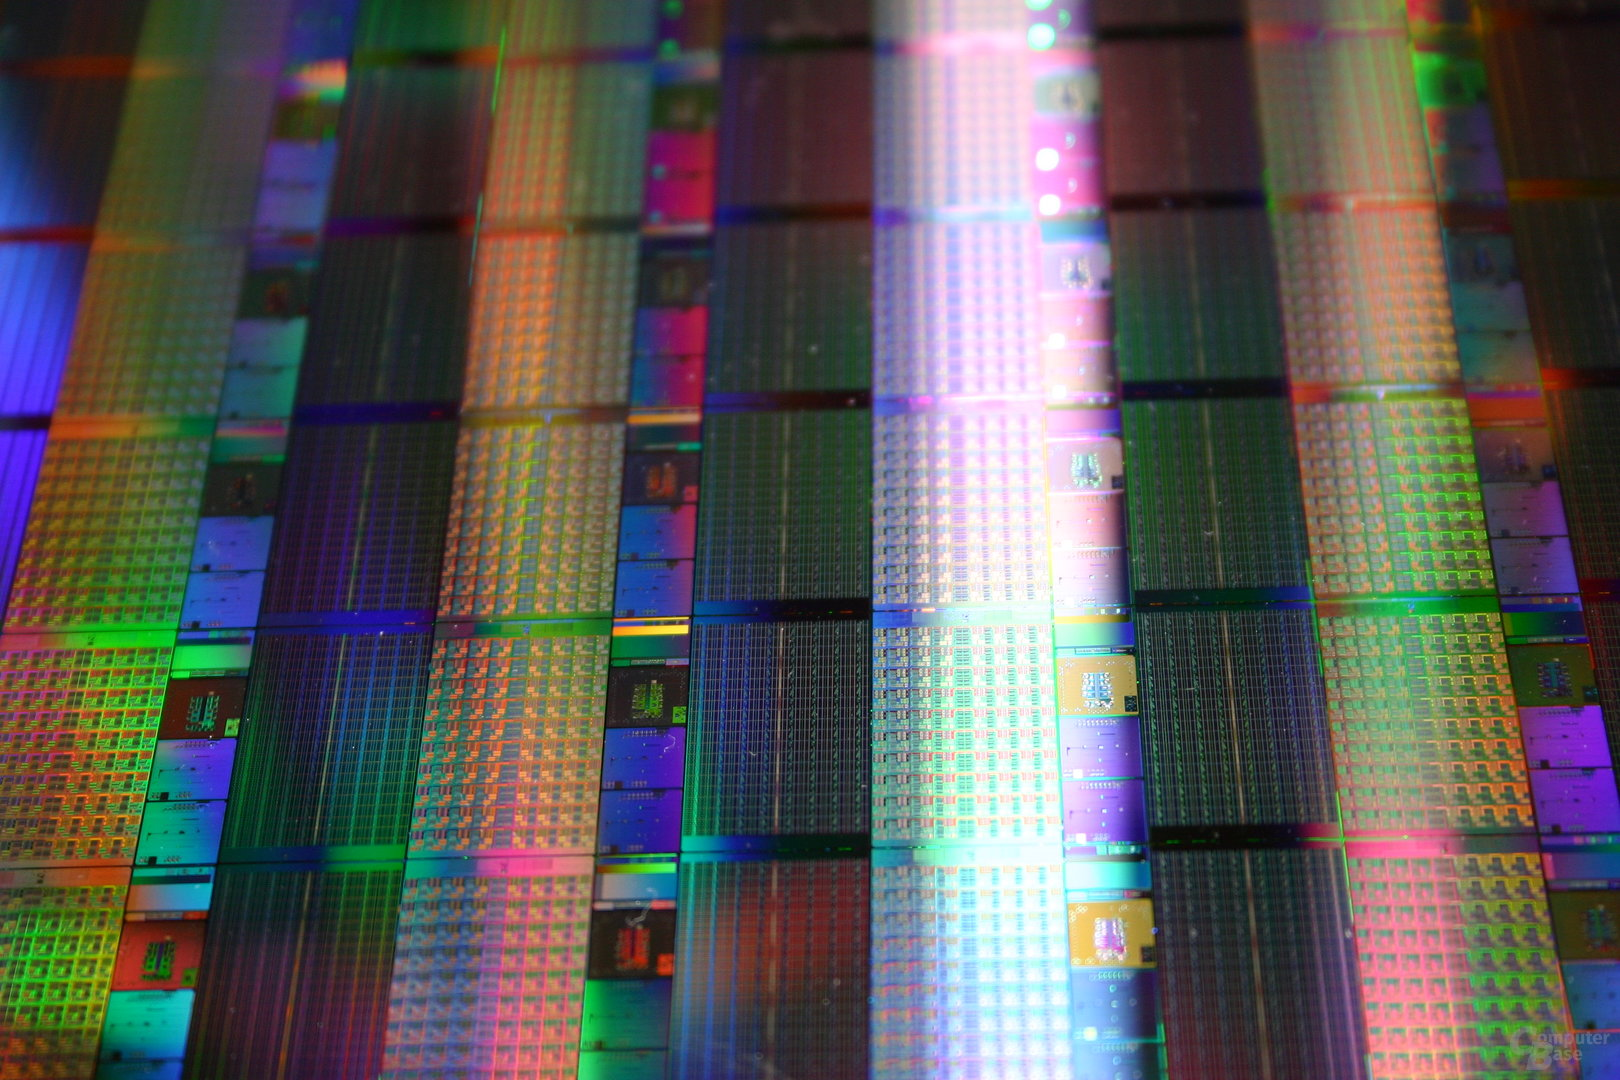 Wafer mit 80-Core-Chips